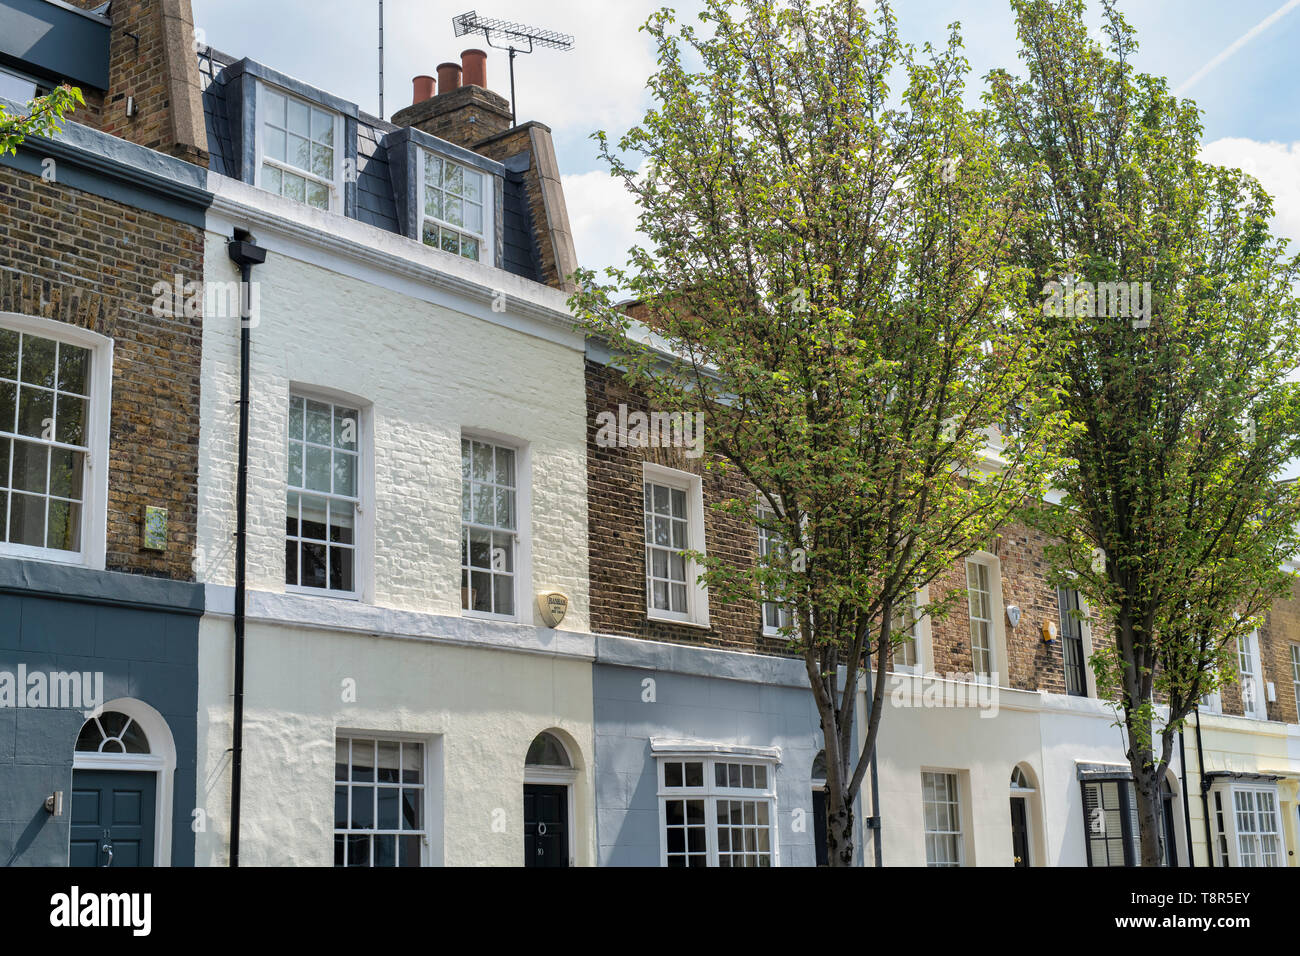 Painted Houses along Markham Street, Chelsea, London, England - Stock Image